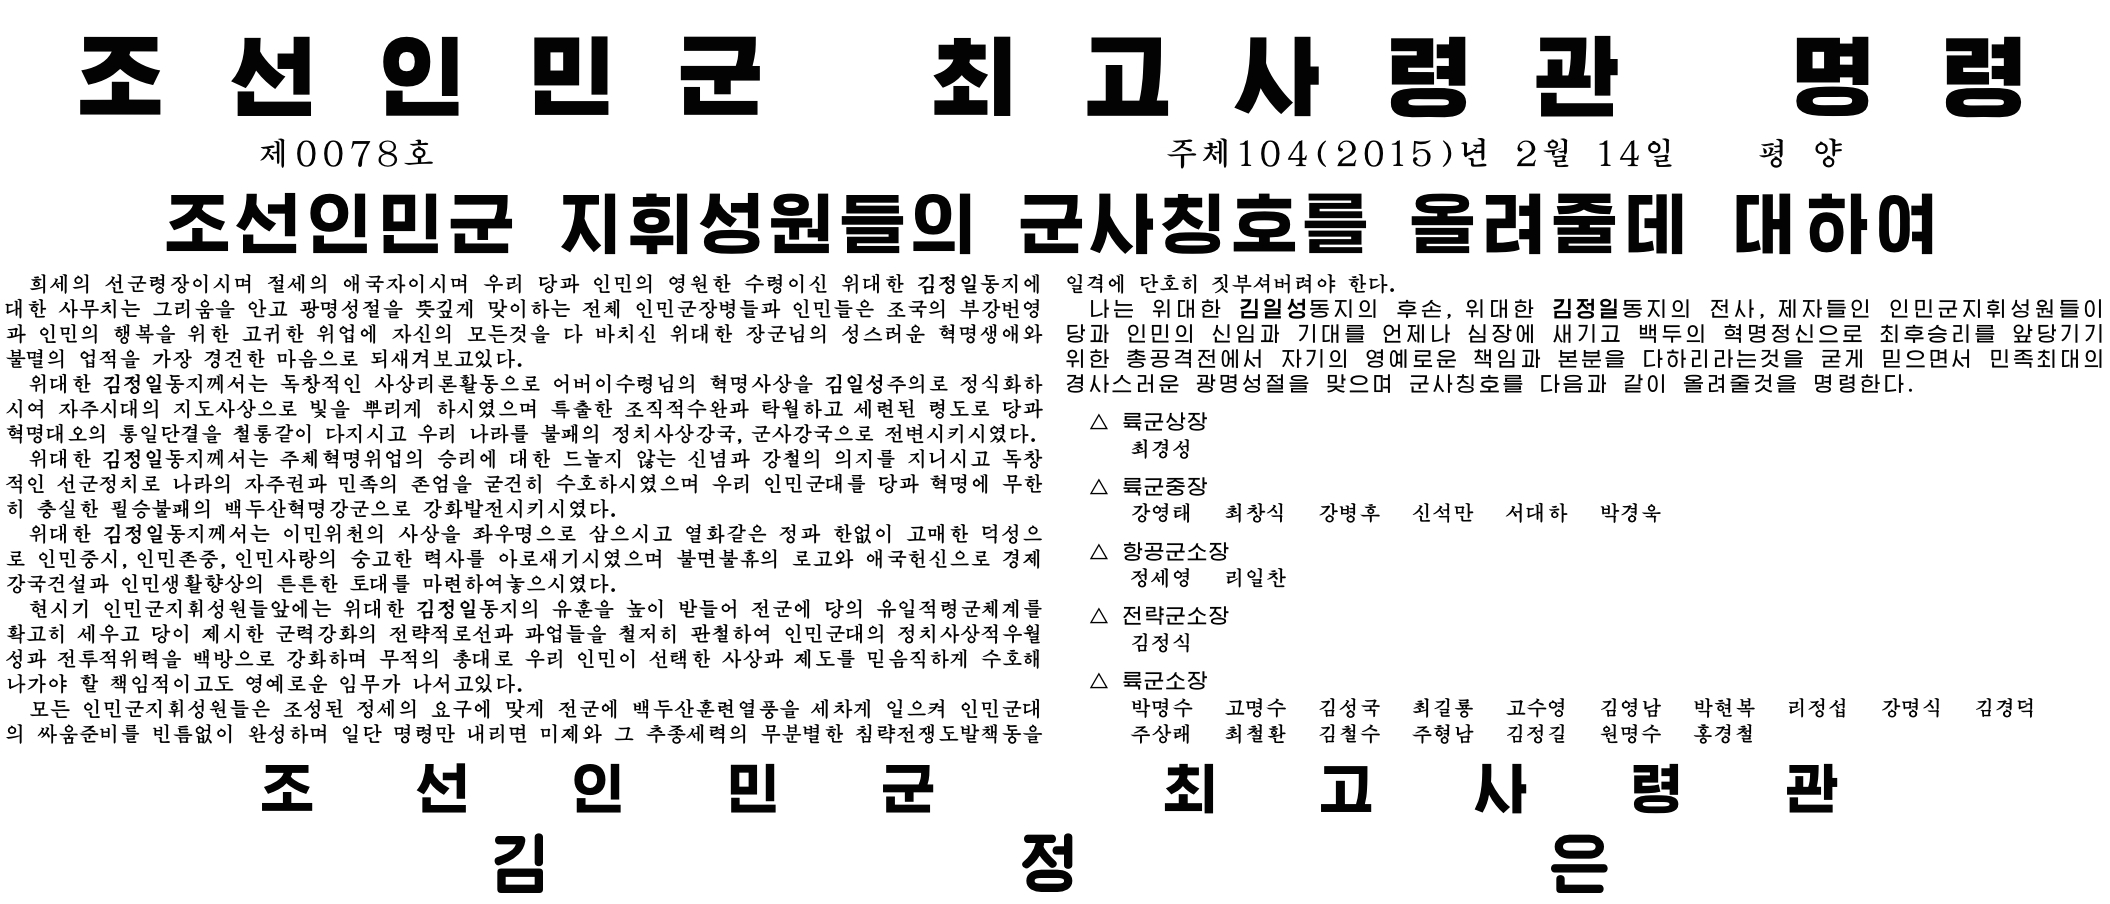 Kim Jong Un's military promotions order for the Day of the Shining Star (KJI's birth anniversary), as it appeared in the February 15, 2015 edition of Rodong Sinmun